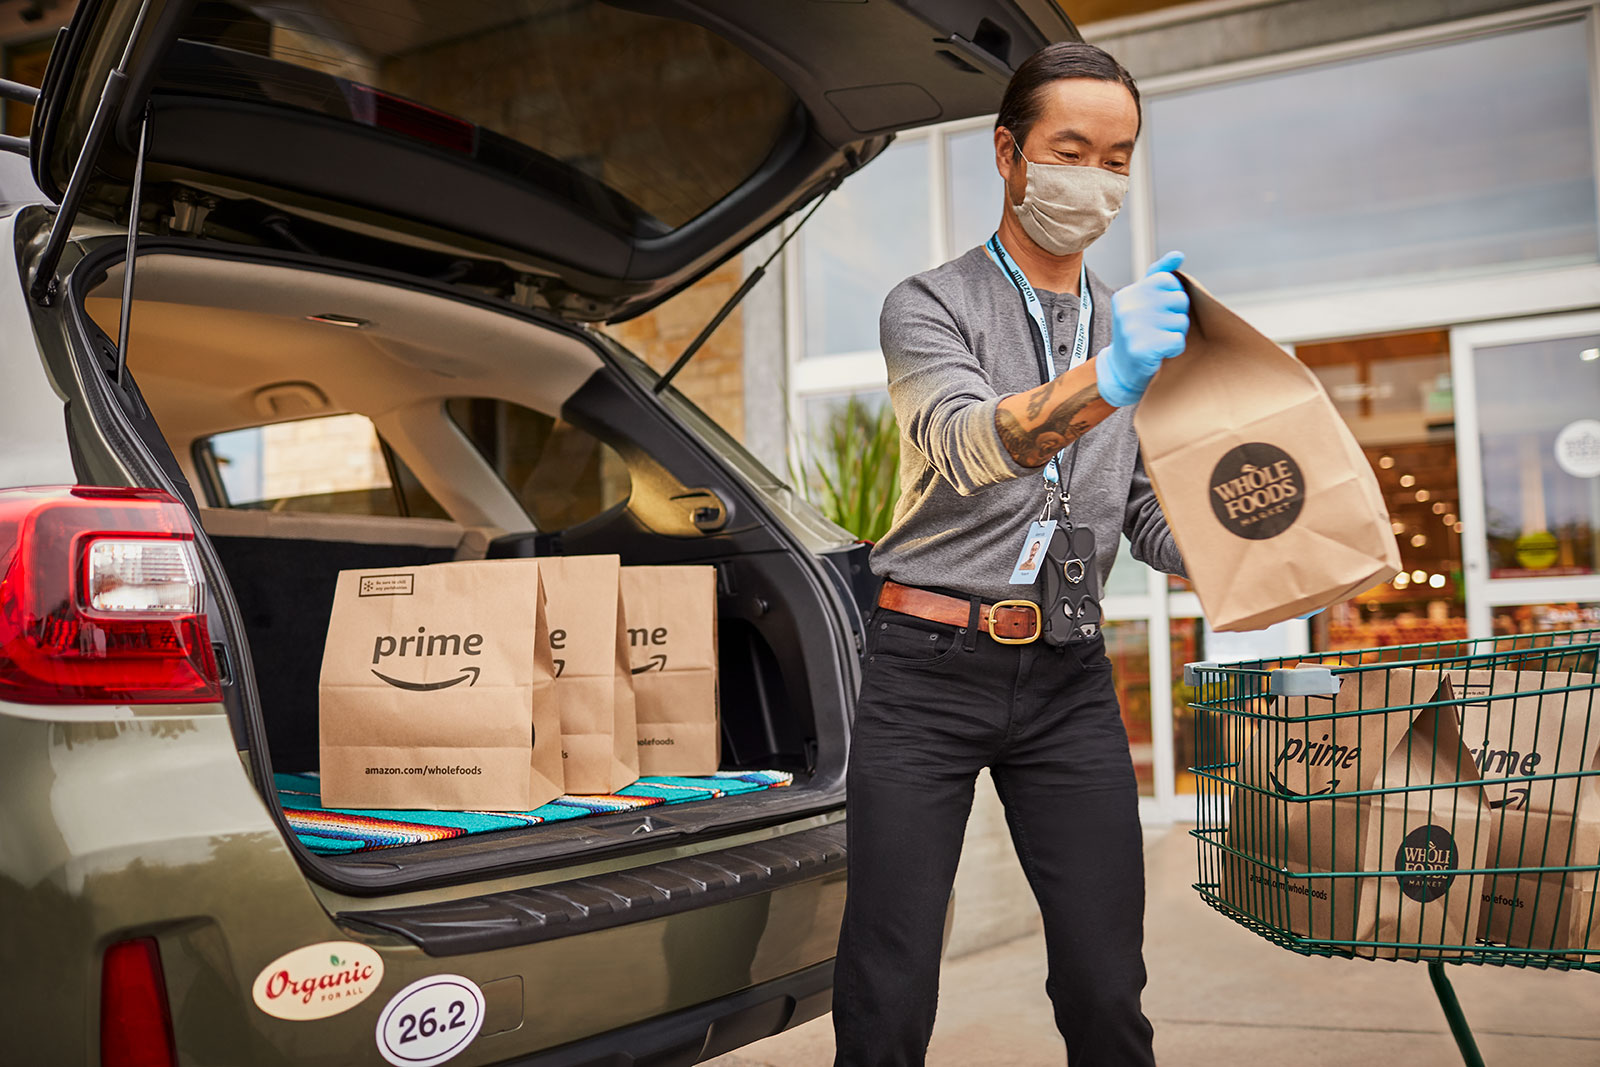 Amazon Prime members get free one-hour grocery pickups at Whole Foods